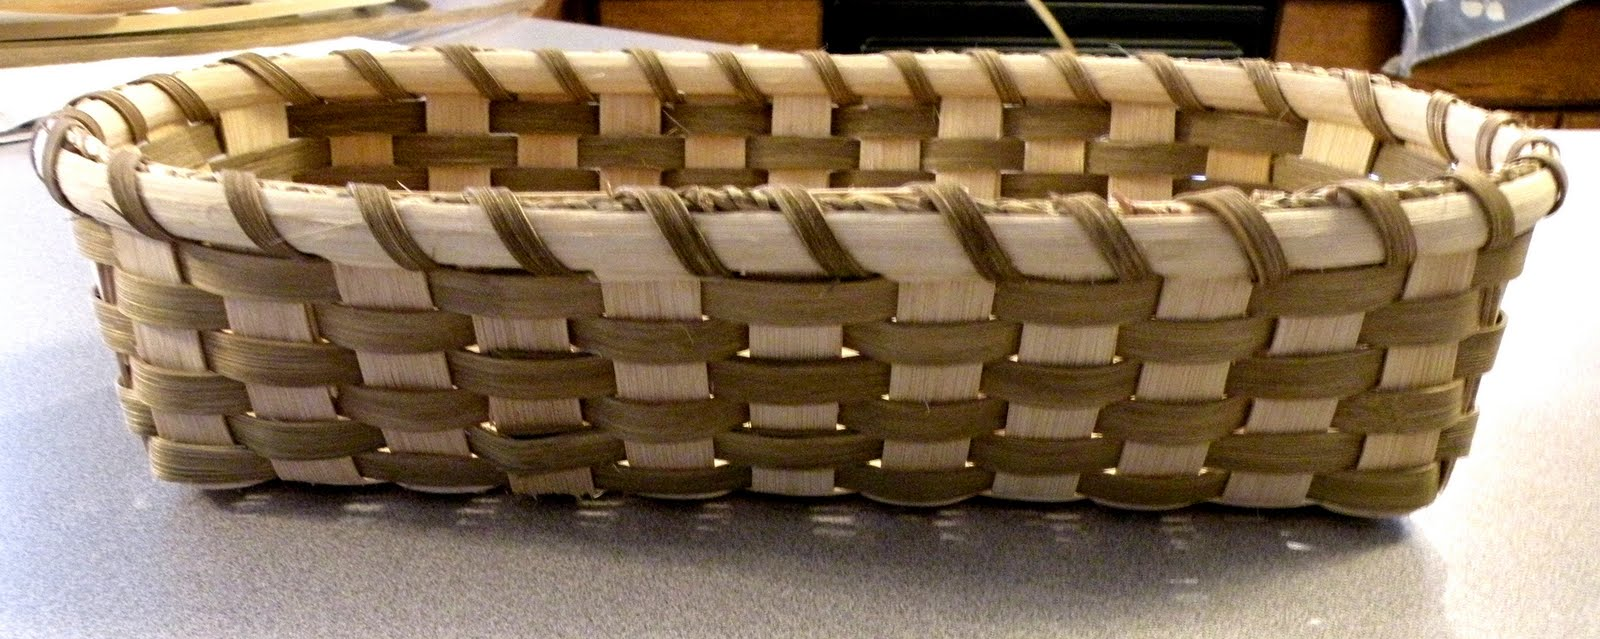 Basket Weaving Books Free : Basket making patterns gallery